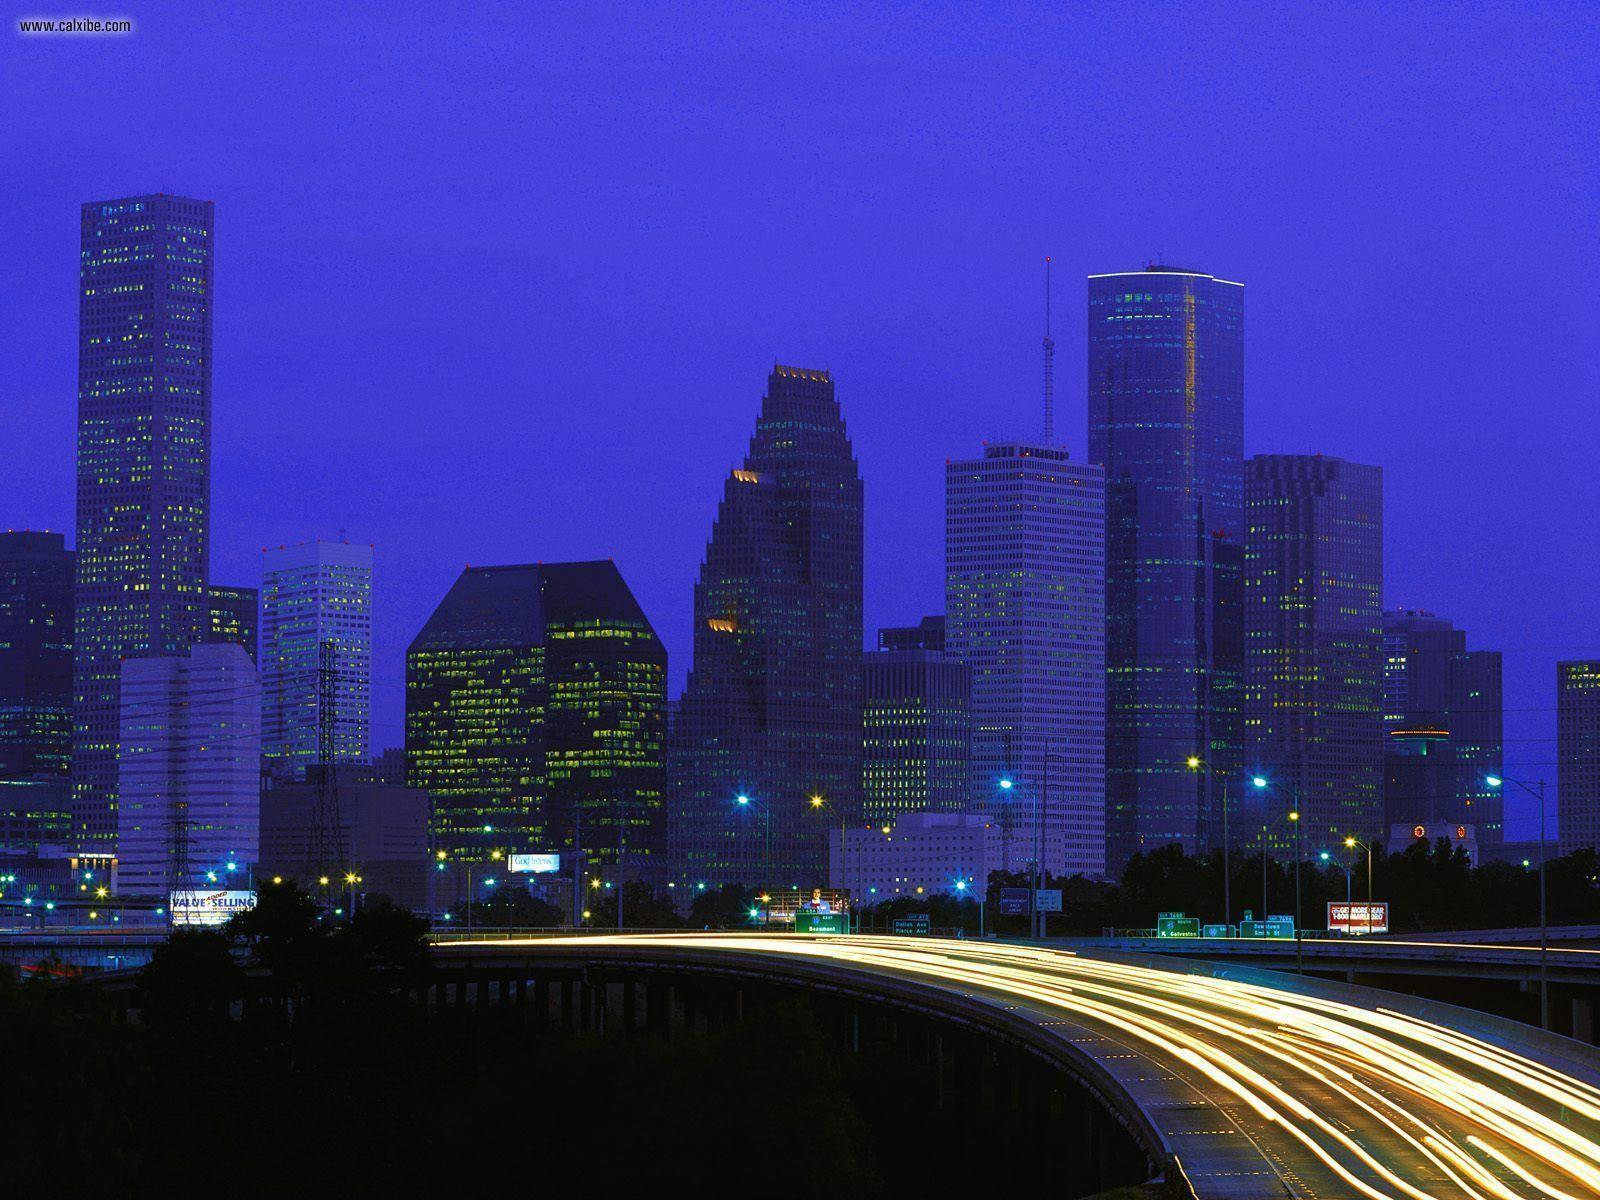 downtown dallas hd wallpapers - photo #20